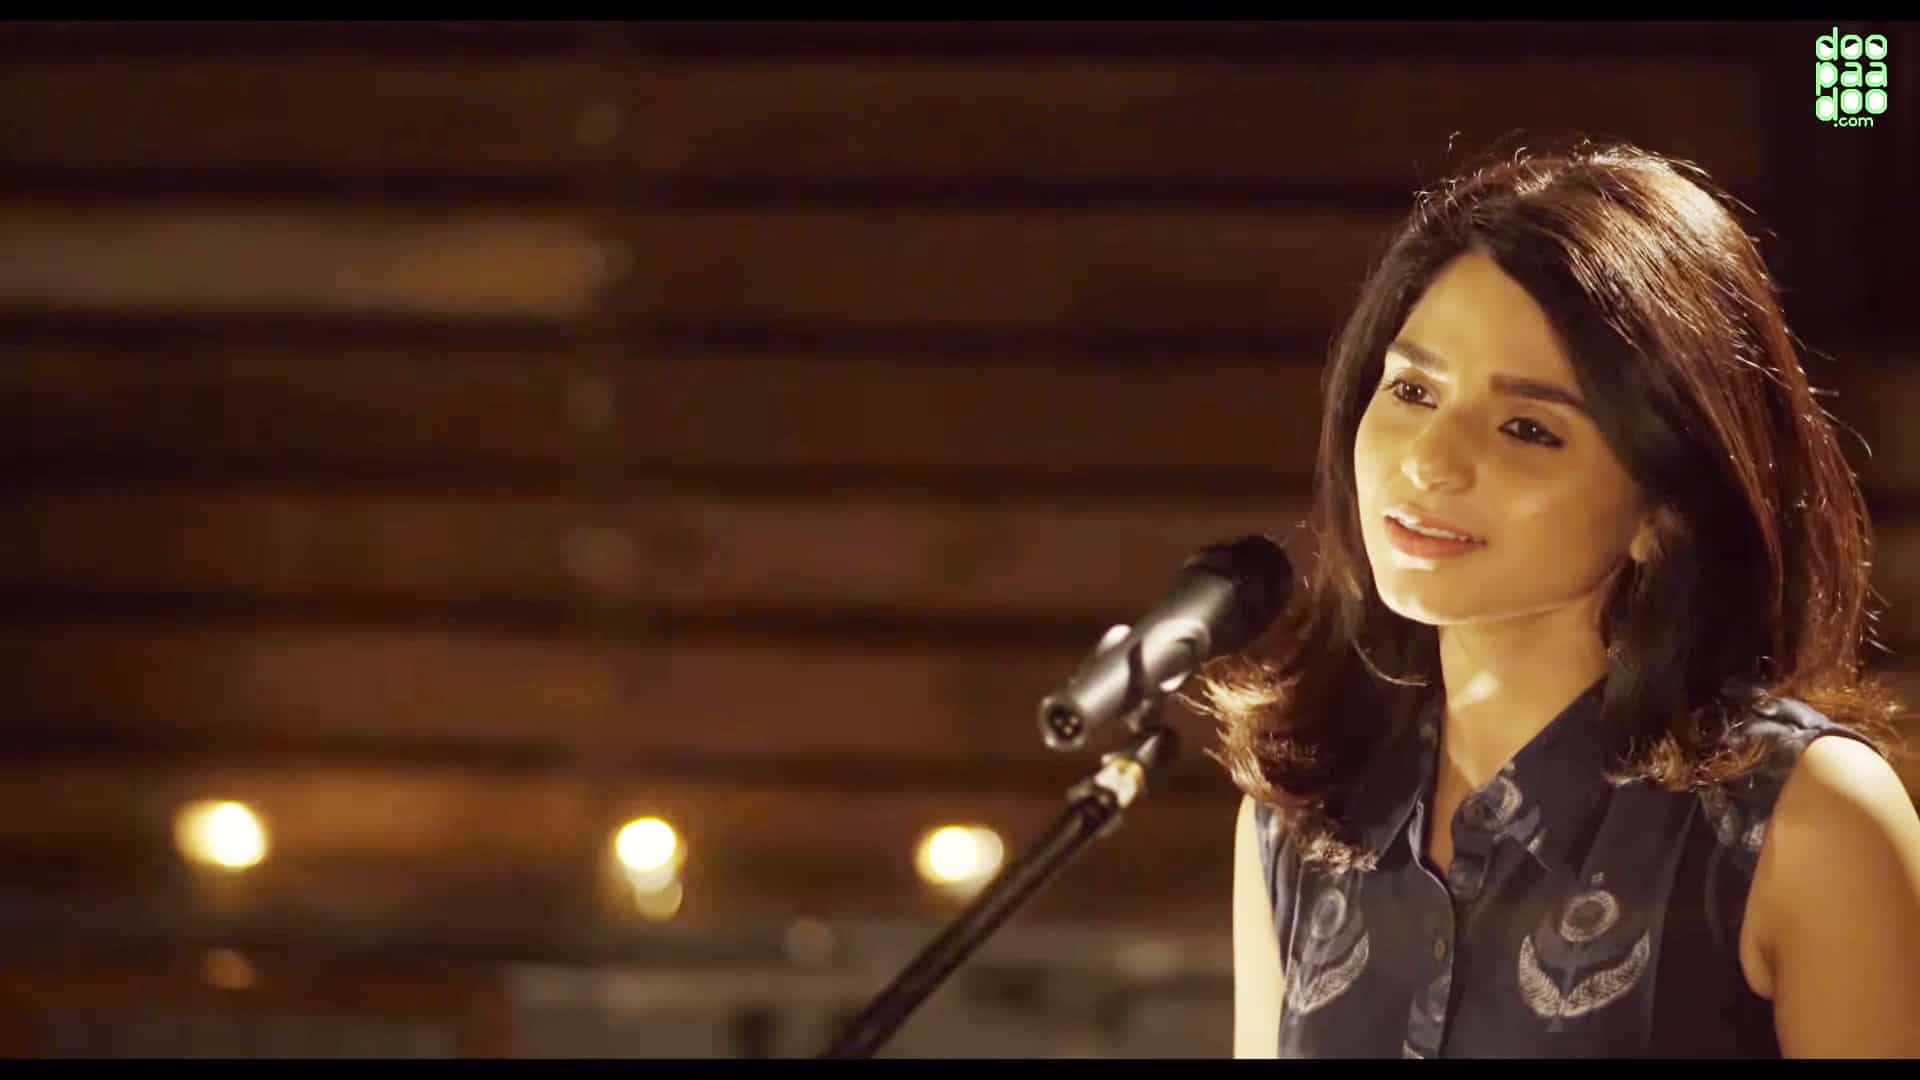 From cubicles to studios – Yamini Ghantasala's musical journey so far